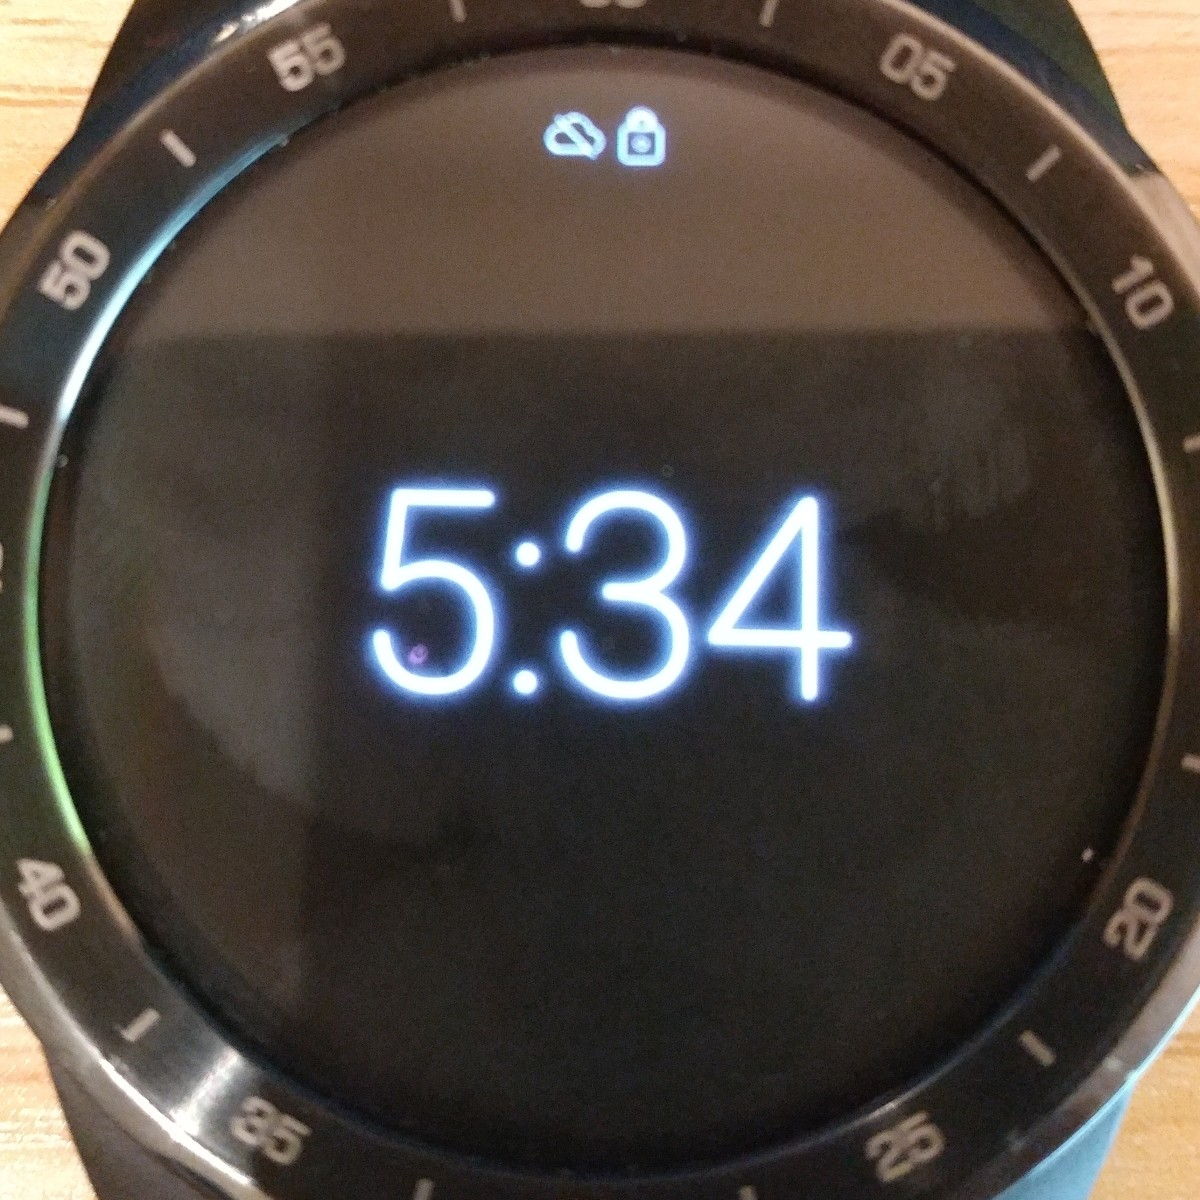 This is the TicWatch Pro screen.